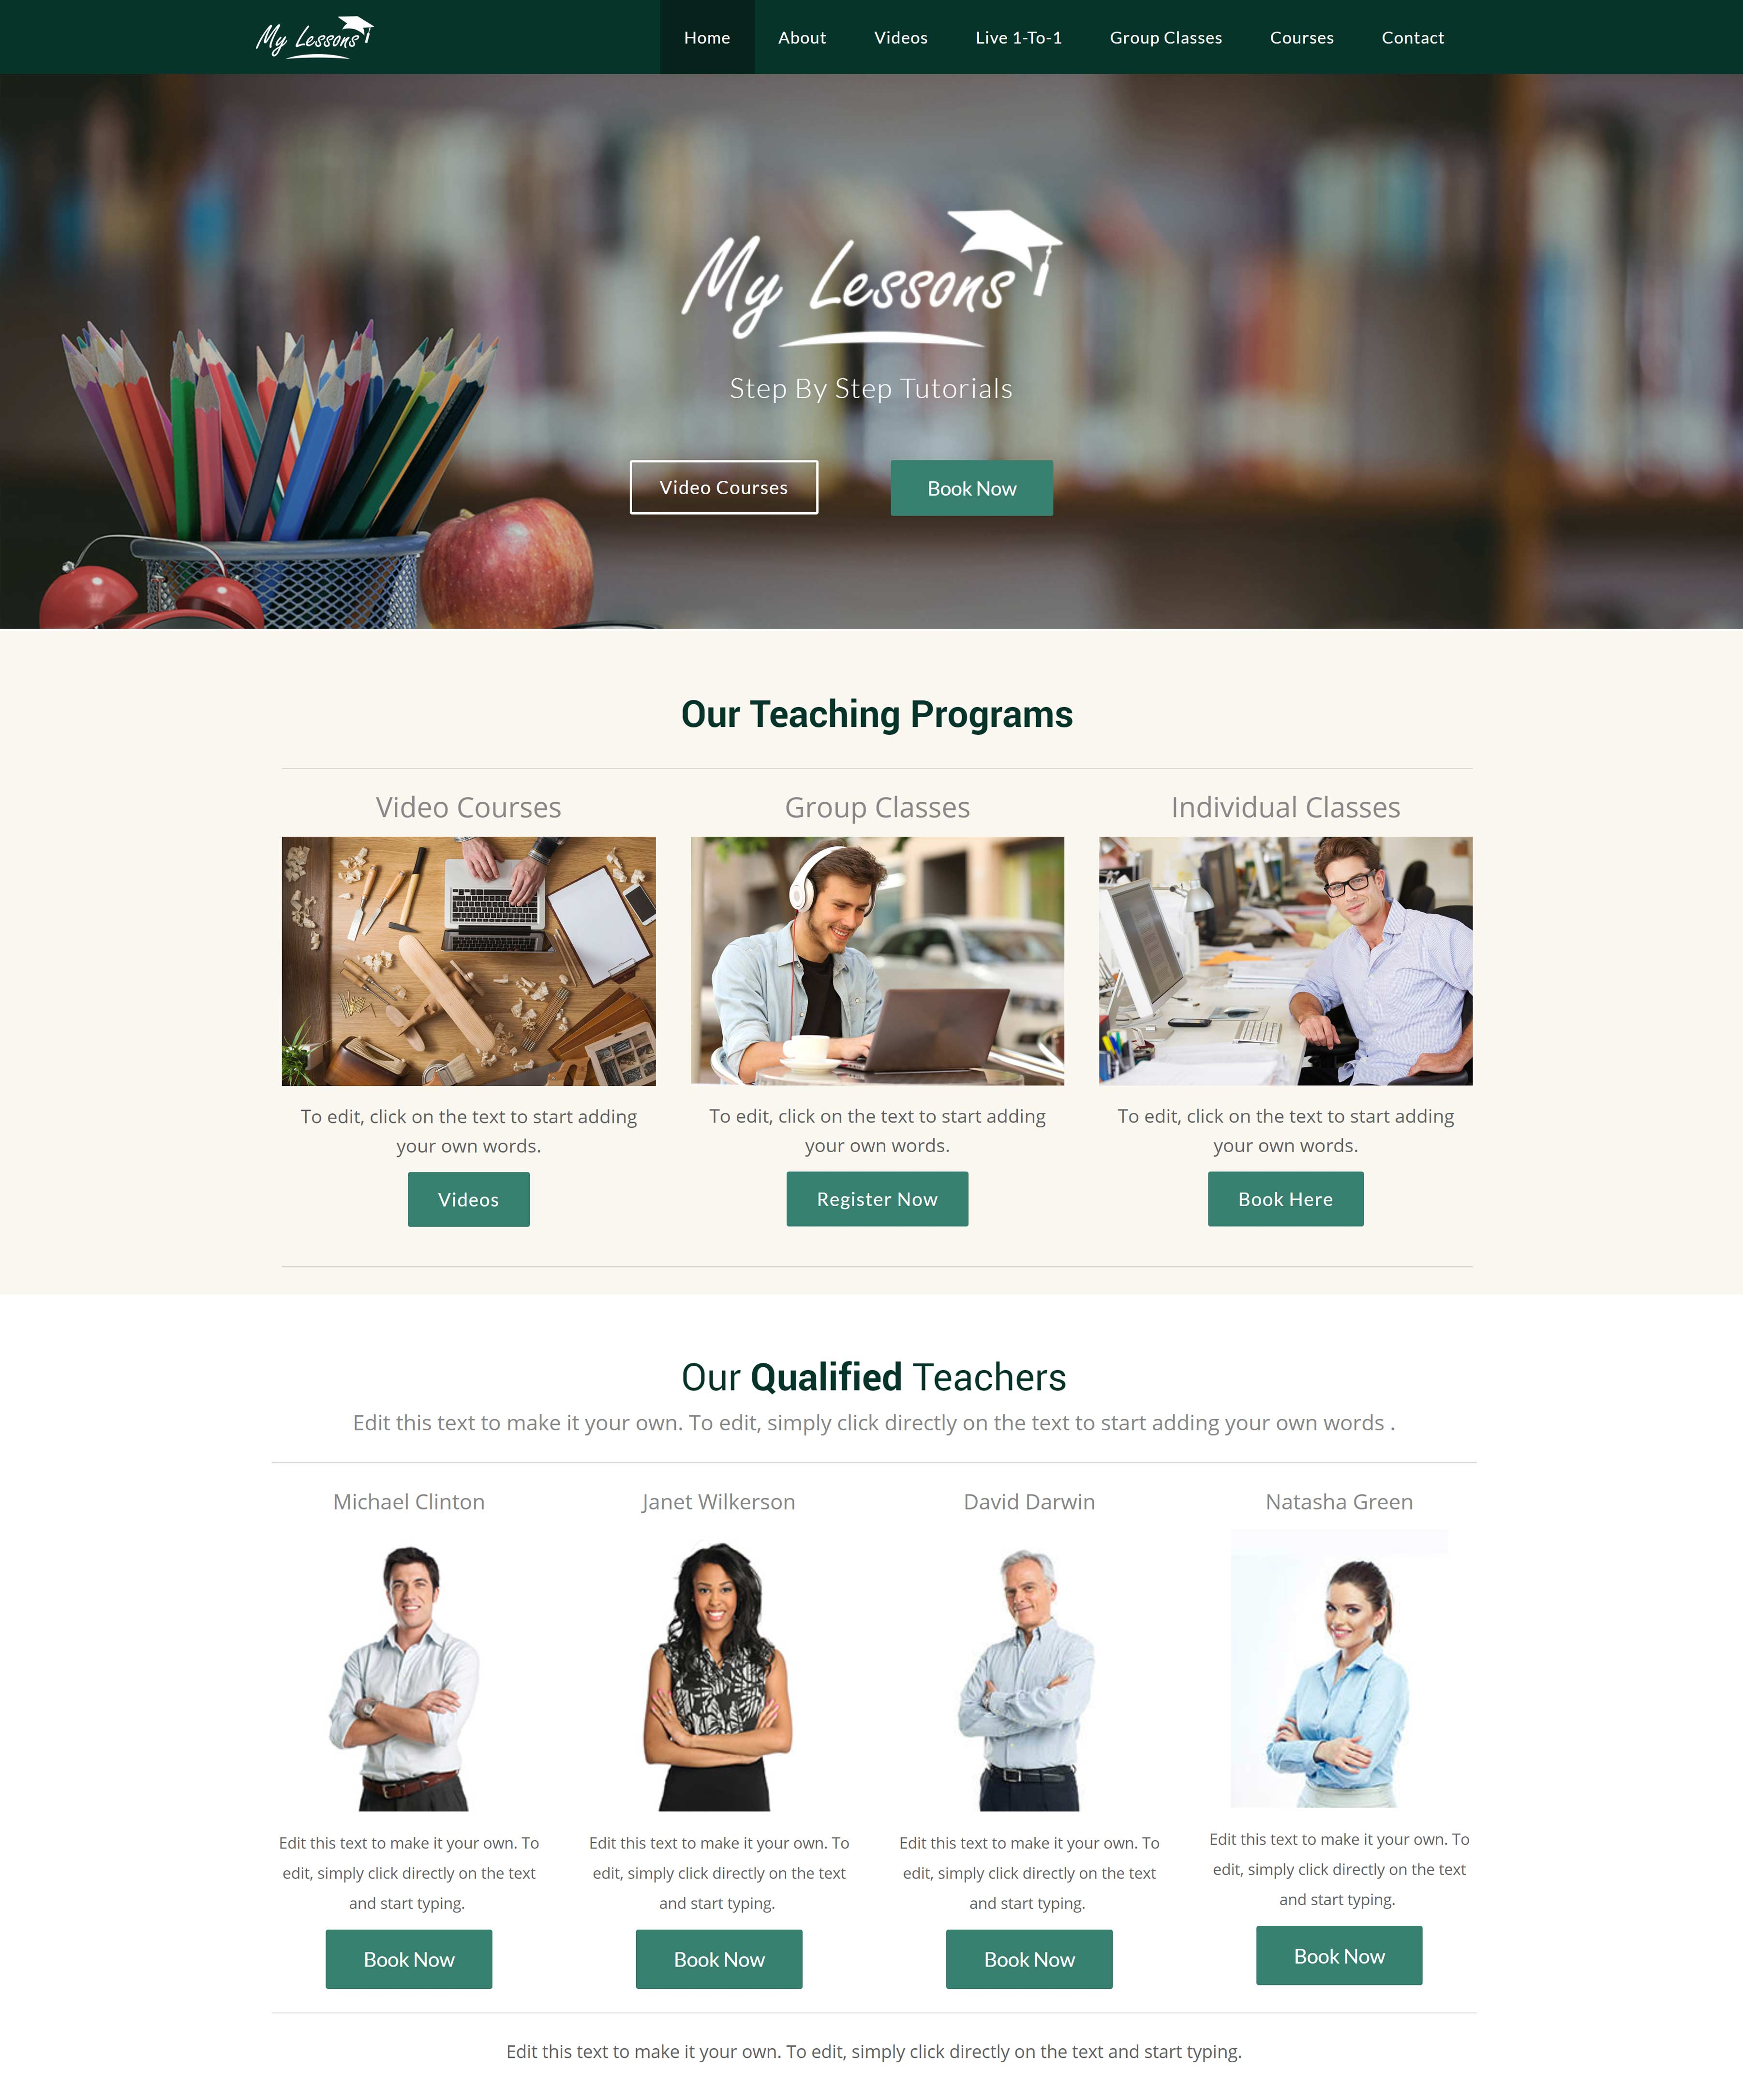 All-In-One Website To Sell Your Online Classes - My Lessons Home Page Example